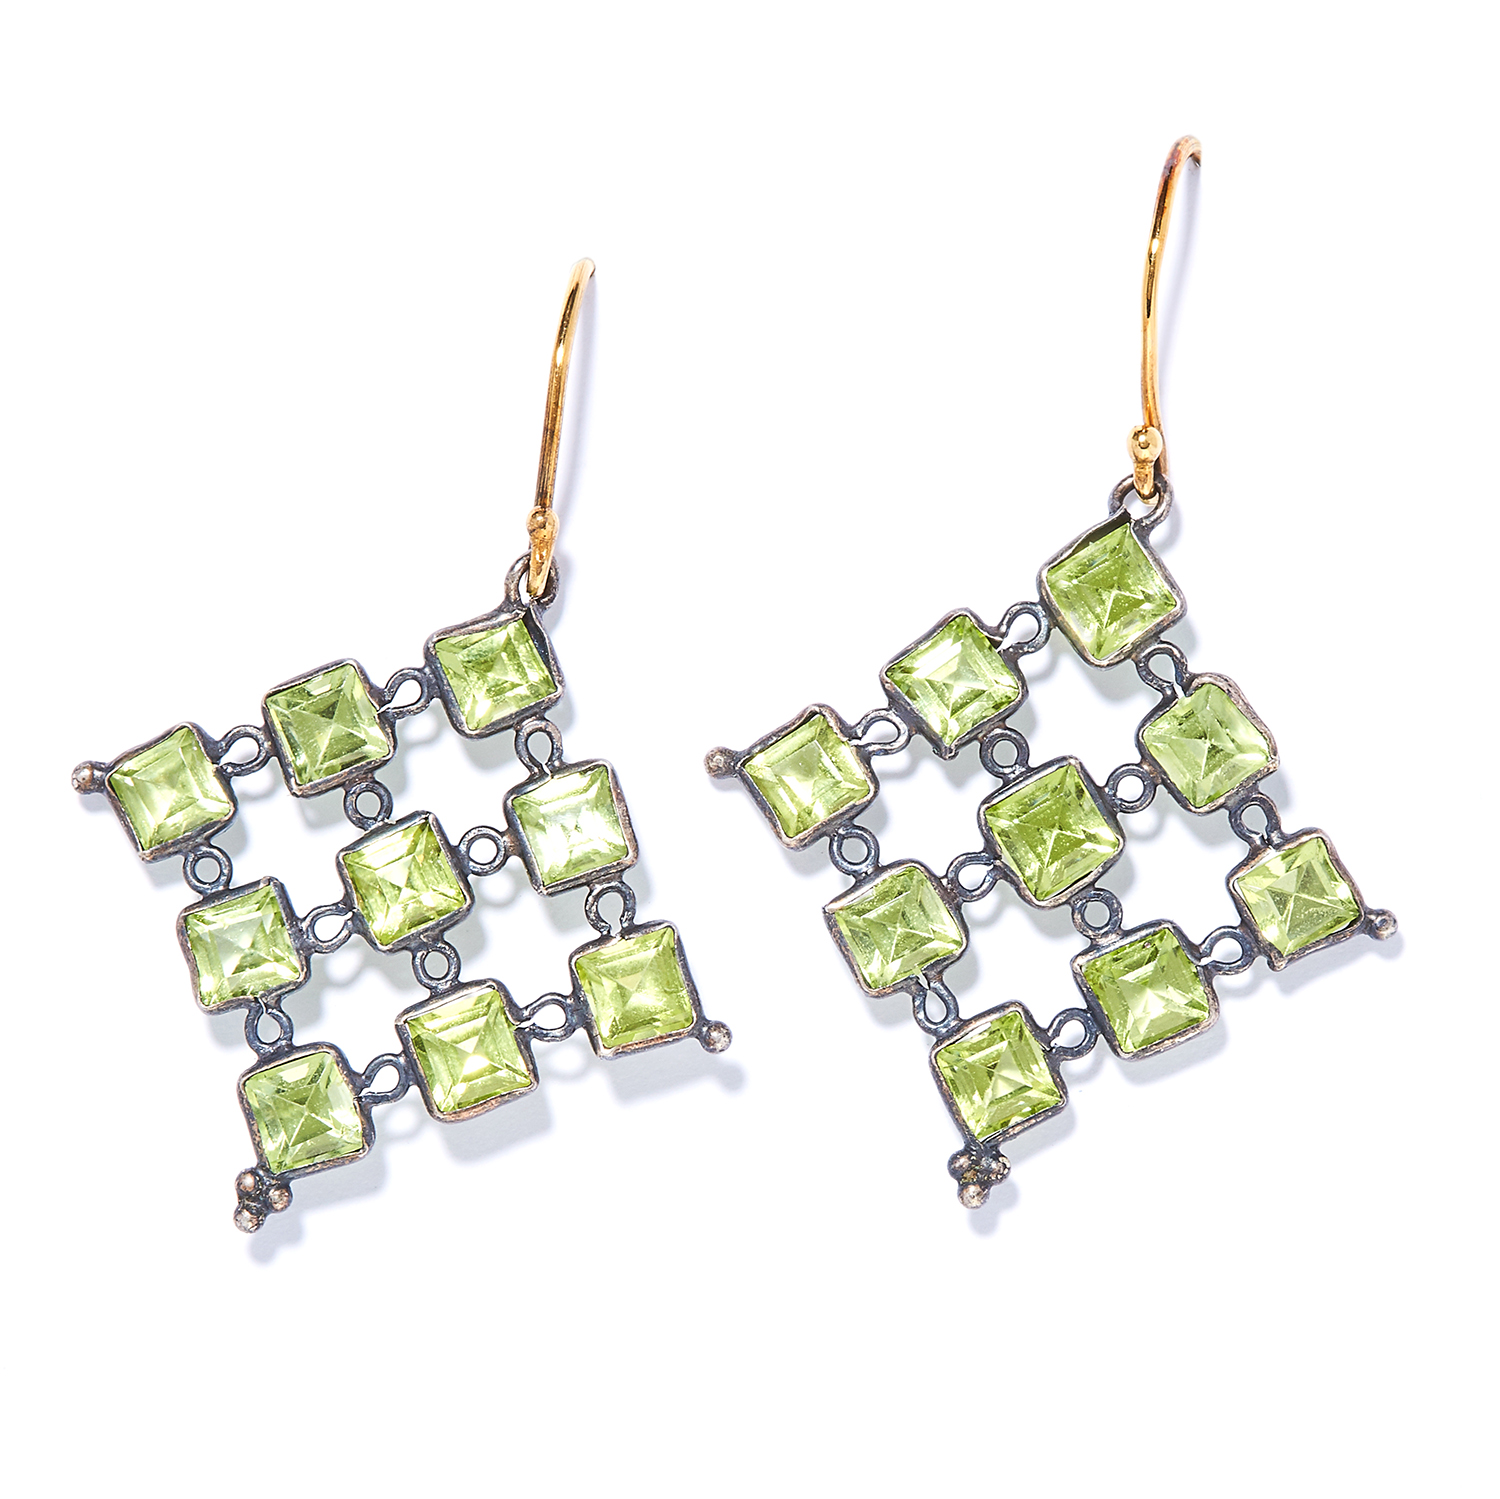 PERIDOT EARRINGS each of openwork diamond shaped design set with peridot, unmarked, 4.1cm, 3.0g.